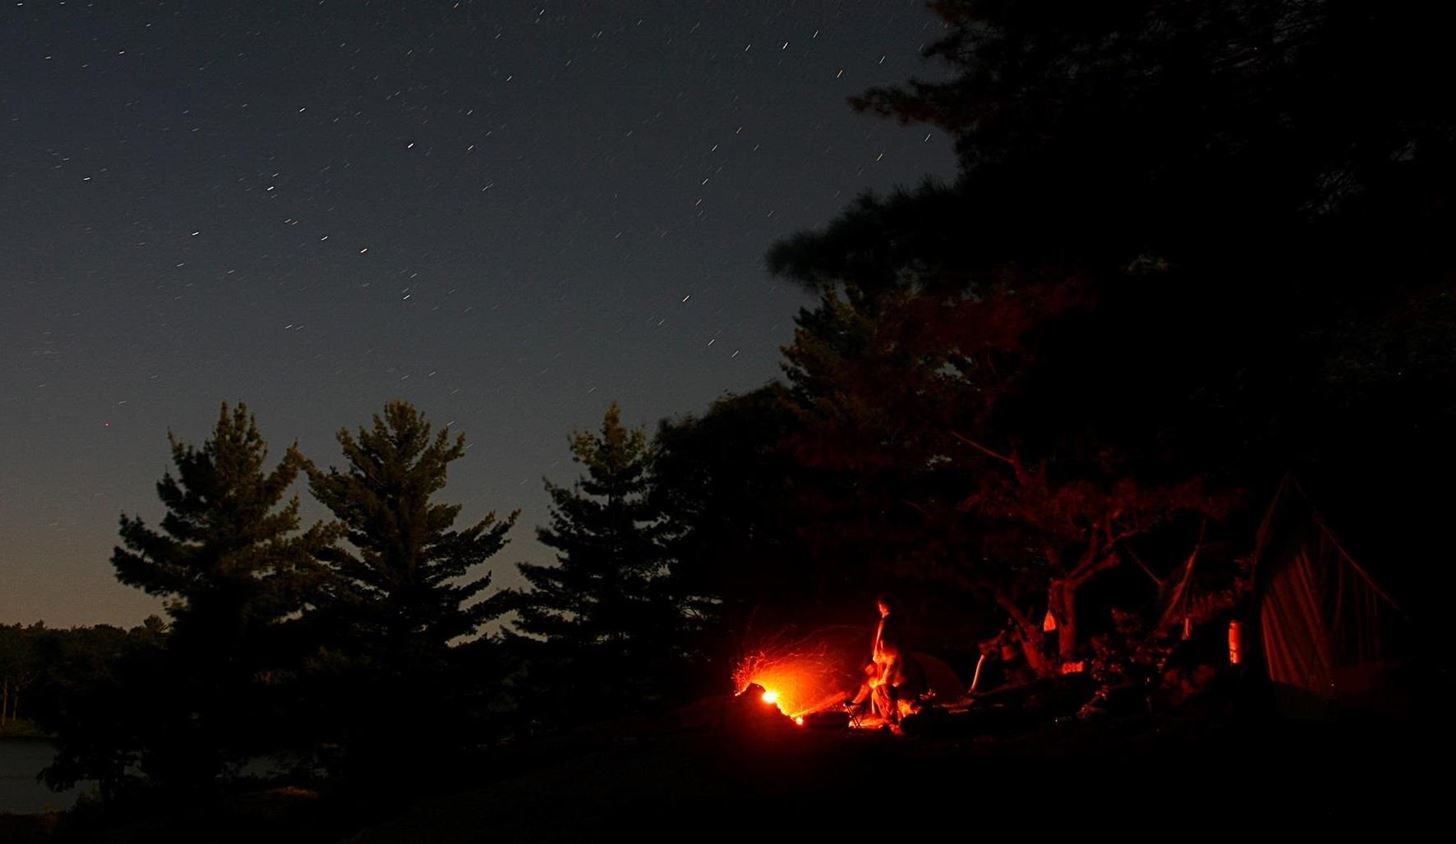 keep-mosquitoes-other-annoying-bugs-away-from-your-campfire-backyard-fire-pit.w1456.jpg